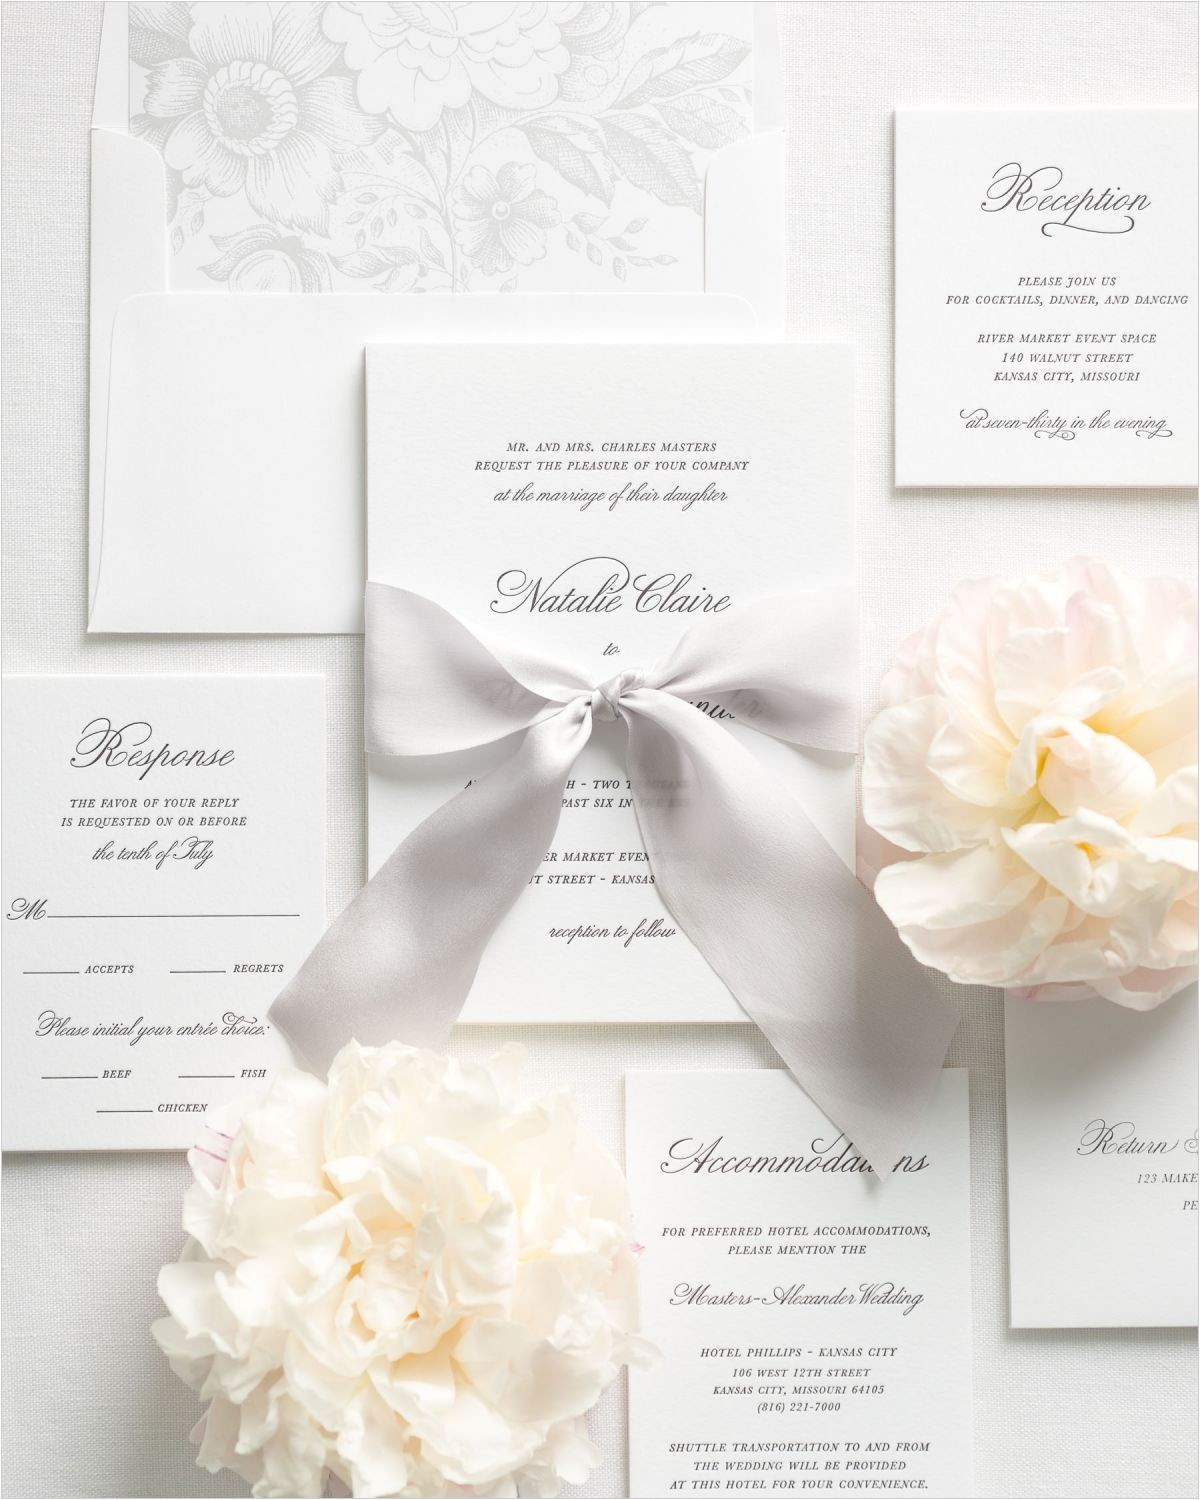 Wedding Invitations at Party City Party City Wedding Invitations Card Design Ideas